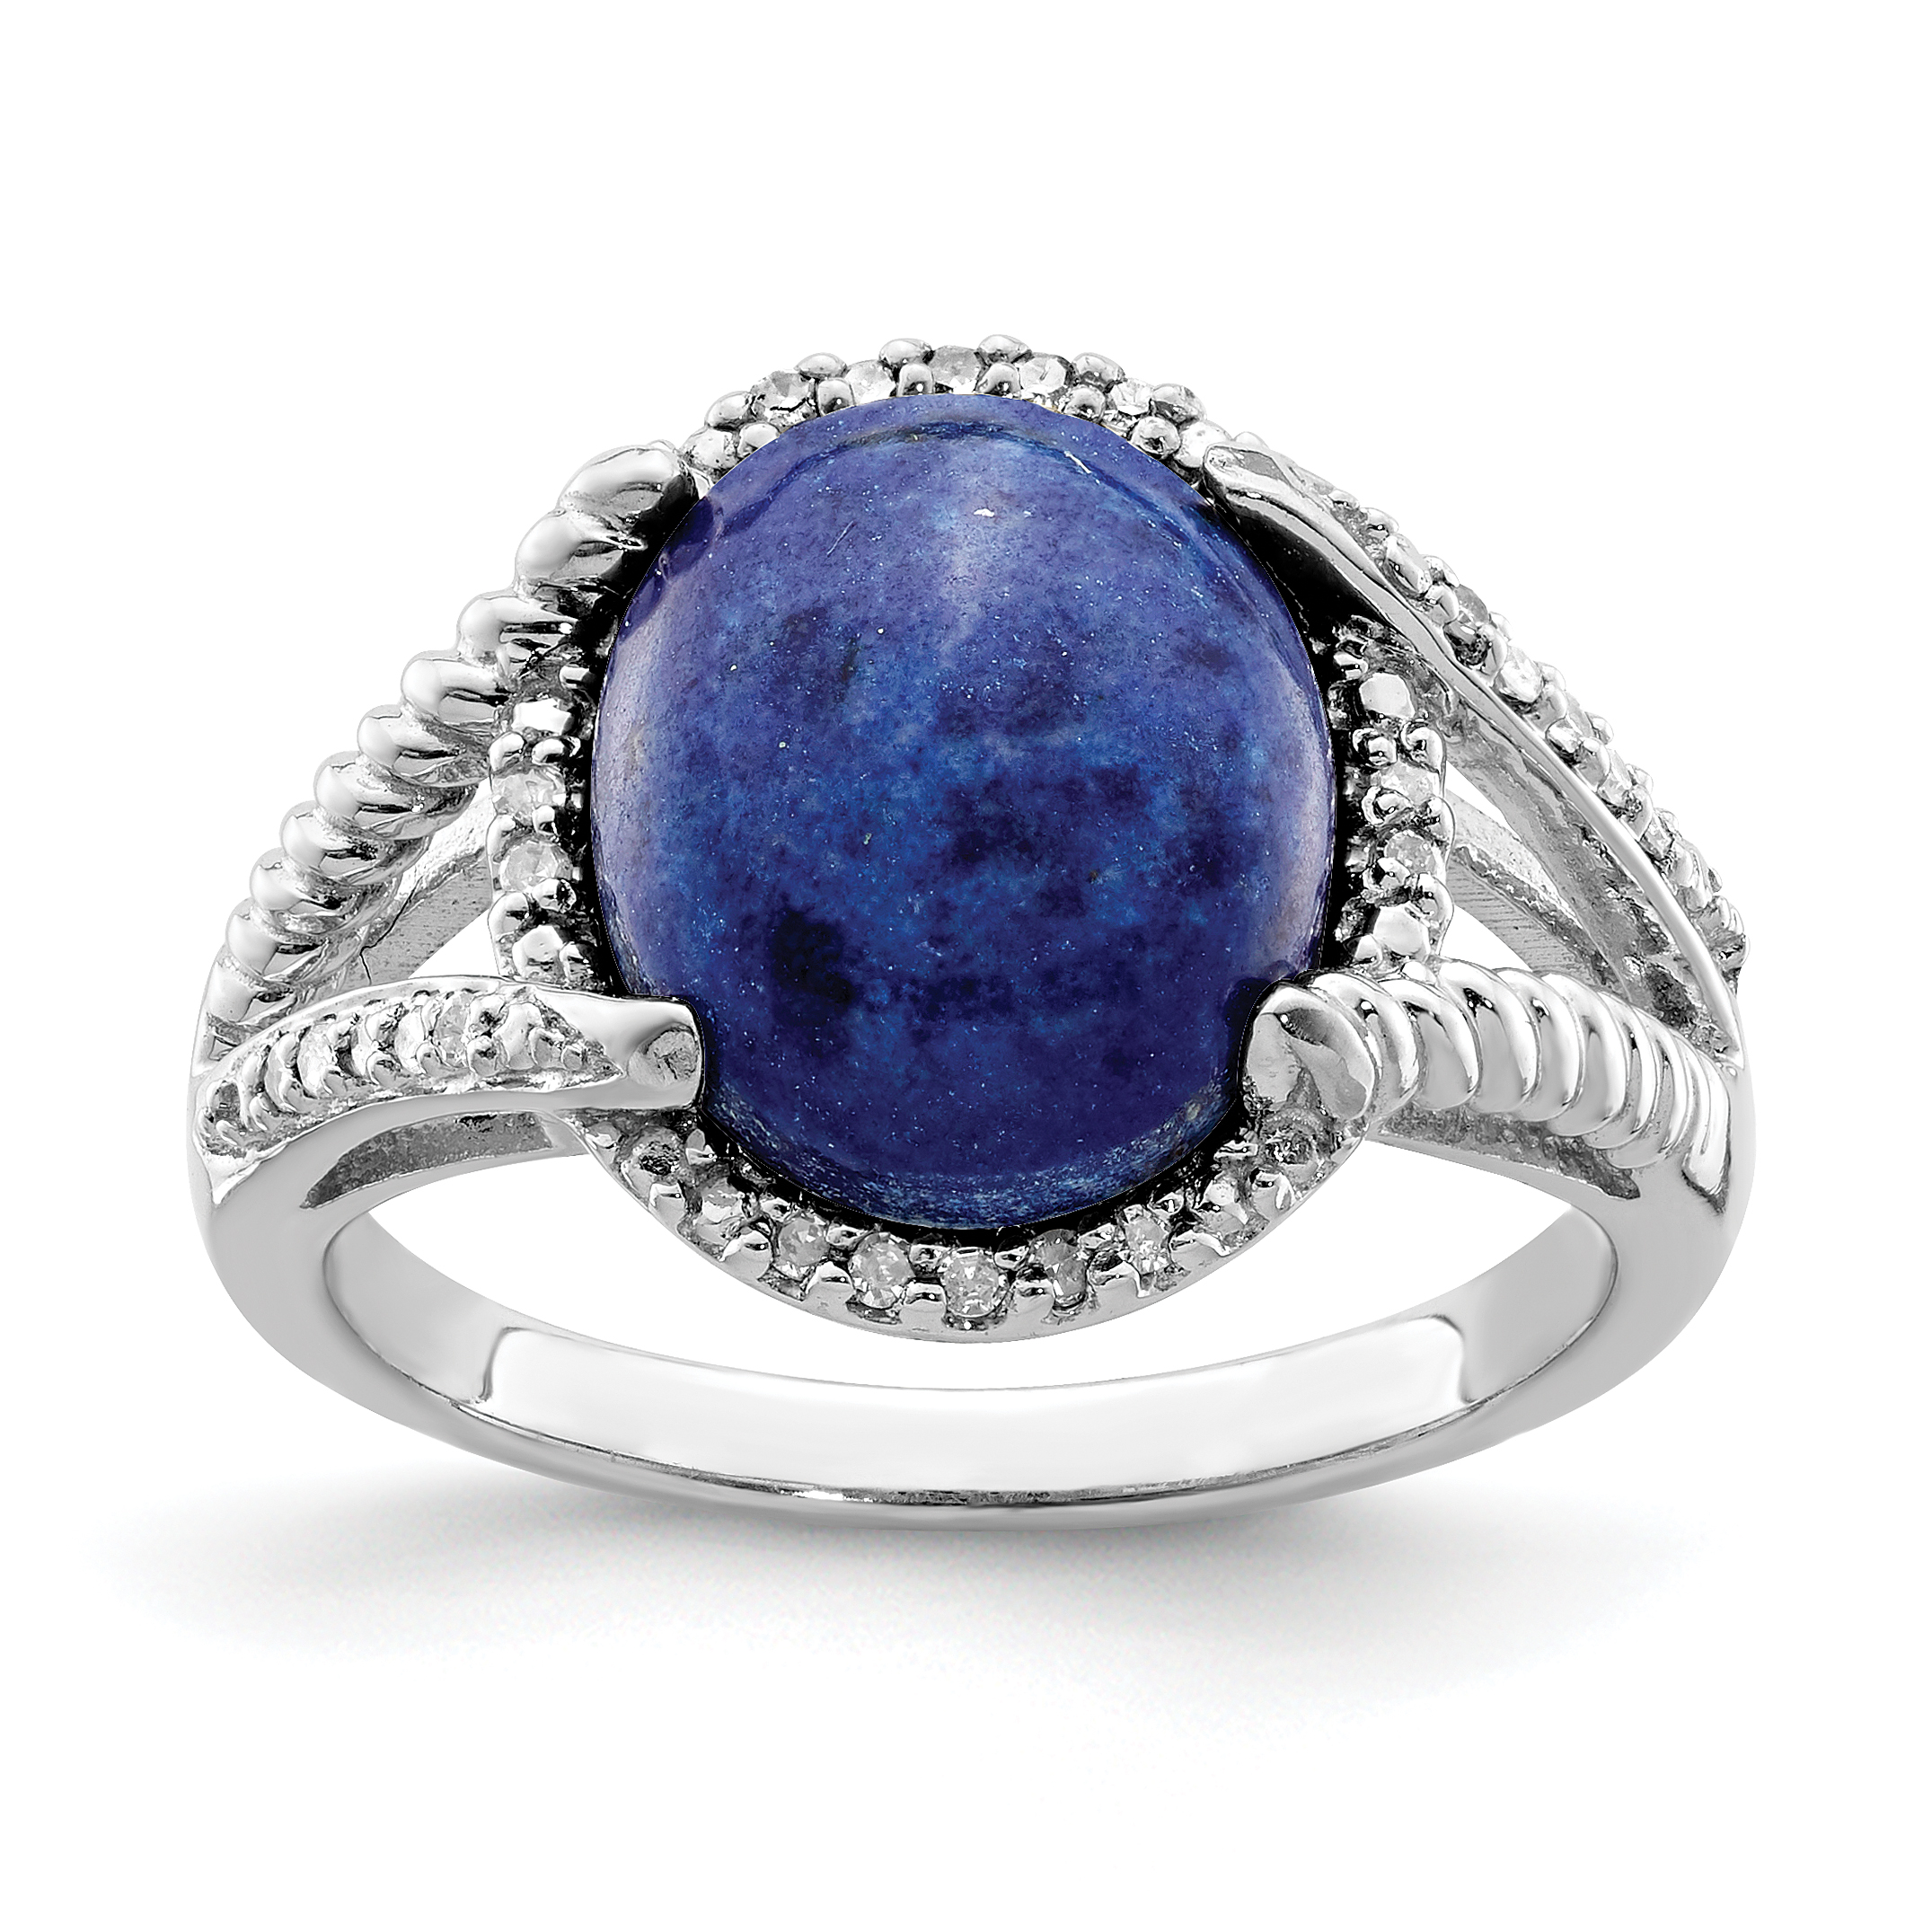 925 Sterling Silver Lapis Diamond Band Ring Size 8.00 Gemstone Fine Jewelry Gifts For Women For Her - image 2 of 2